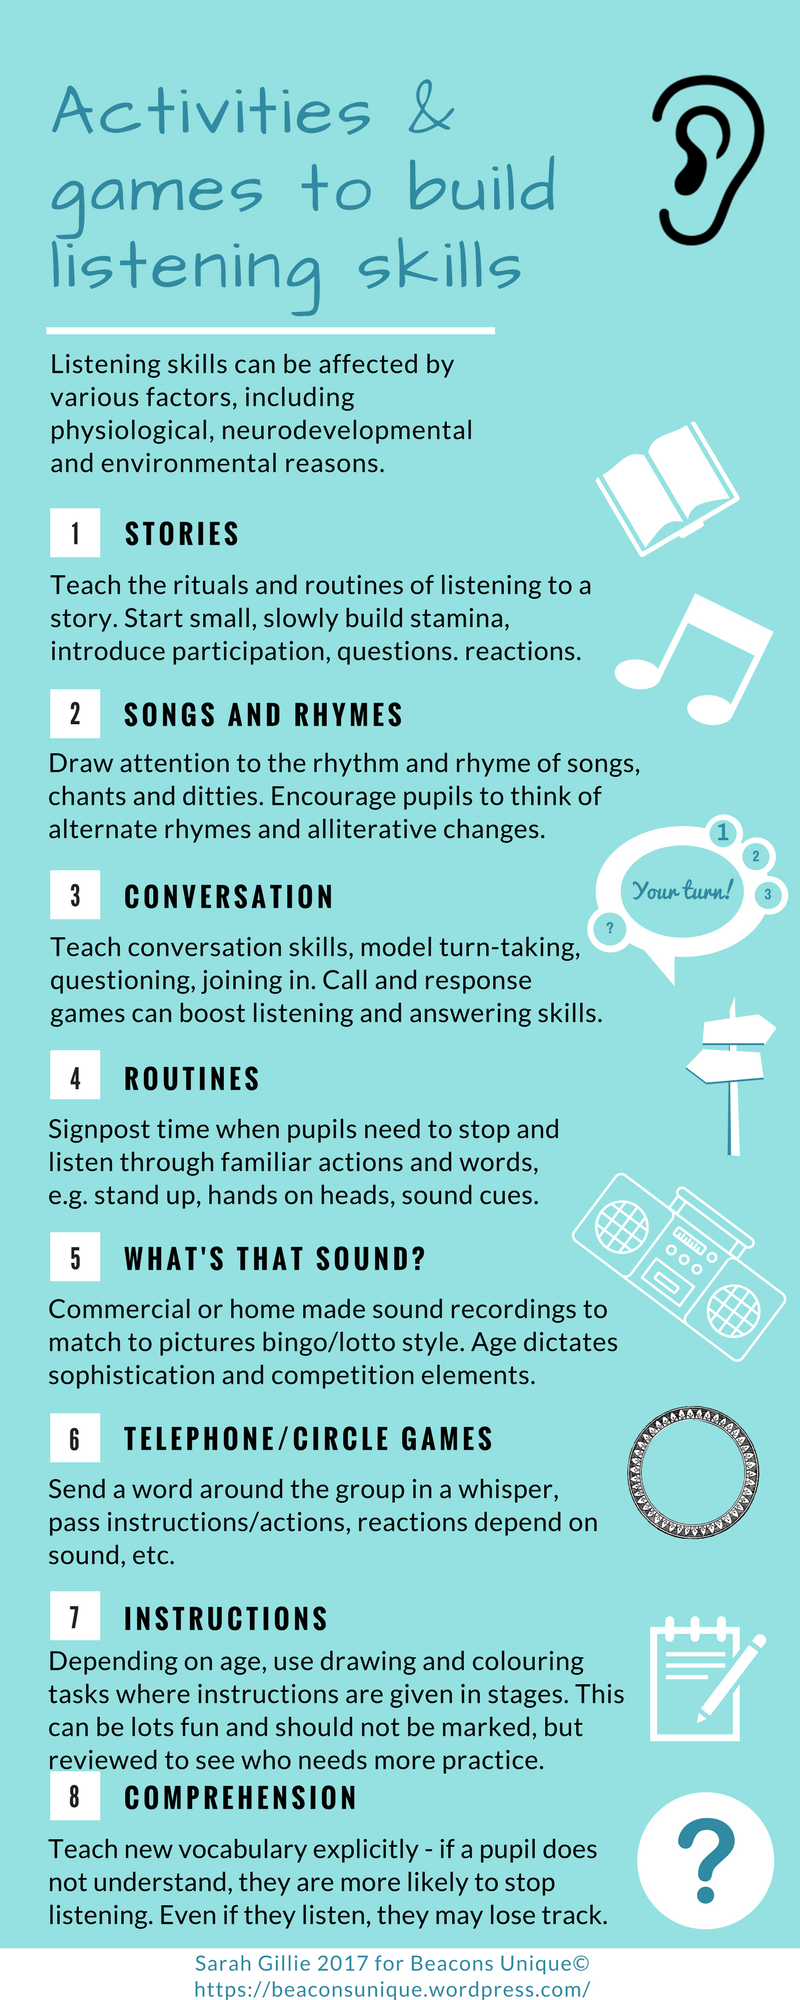 8 games & activities for listening skills.png